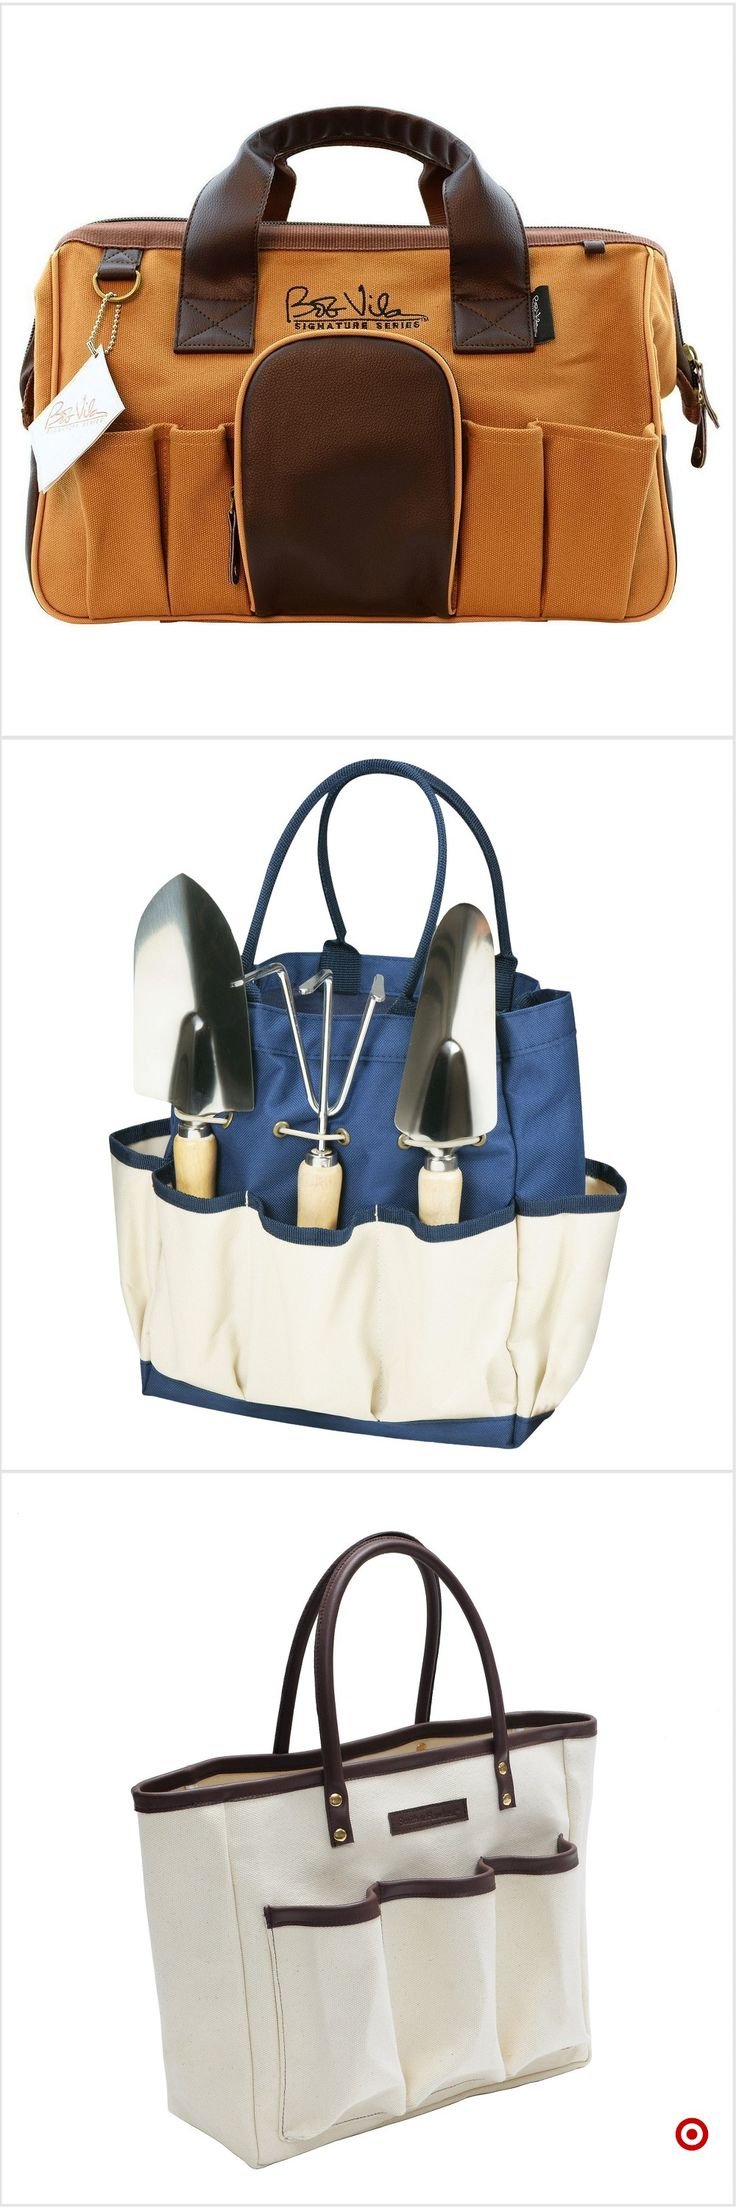 Shop Target for gardening tote you will love at great low prices. Free shipping on orders of $35+ or free same-day pick-up in store.